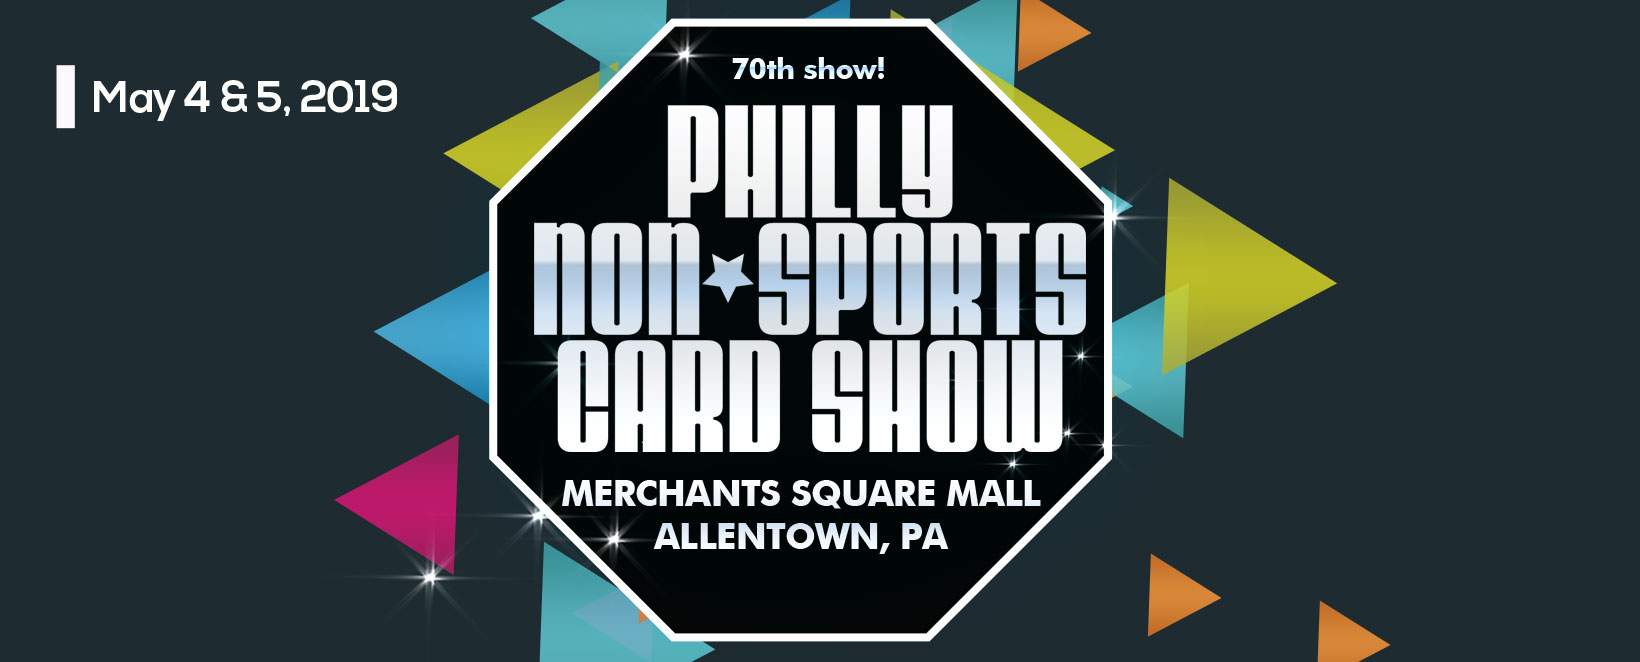 Philly Non Sports Show To Focus Again On Gpkwackys Gpknewscom